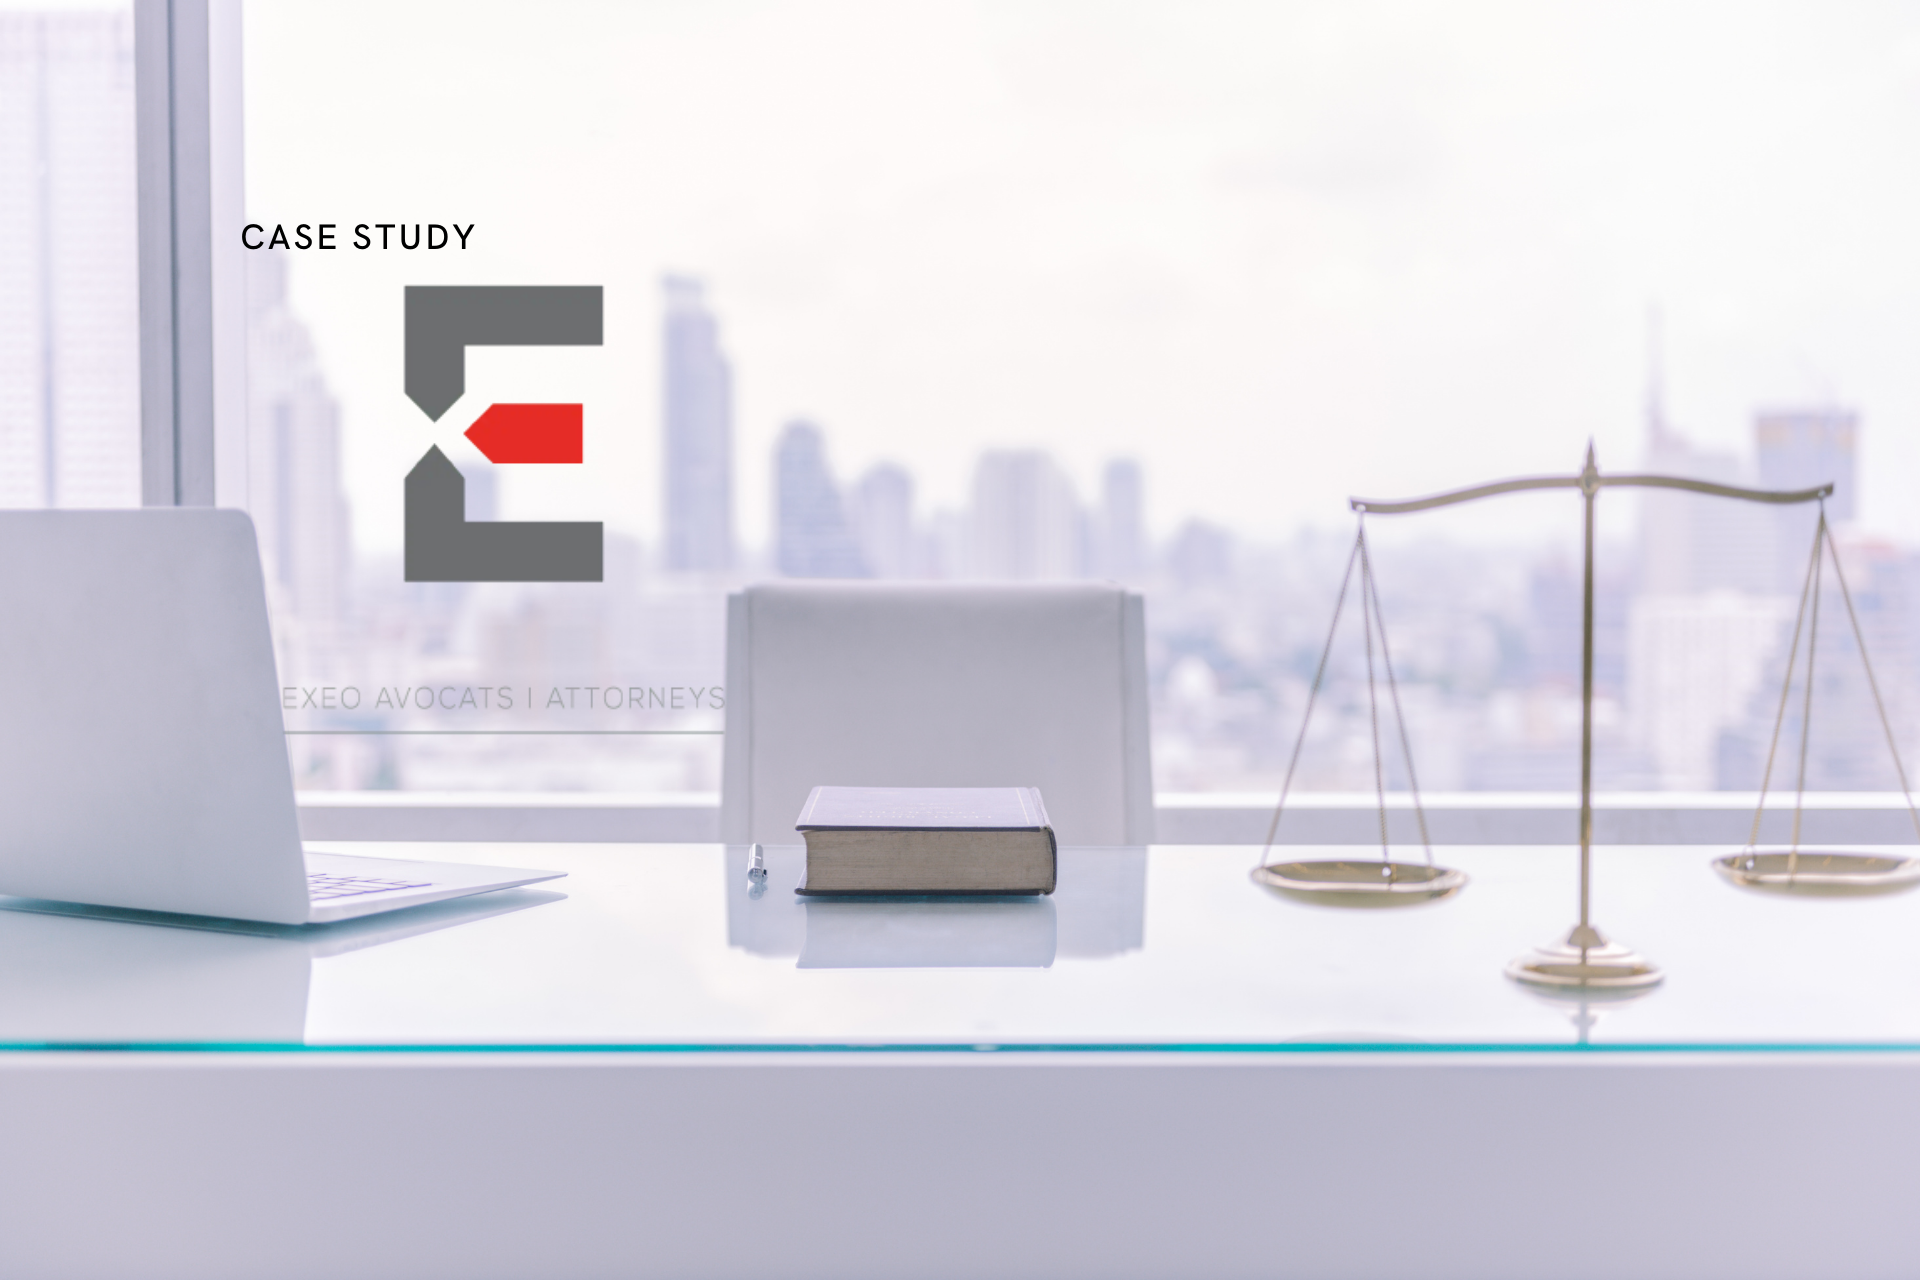 Case Study #02: The First Immigration Virtual Assistant Chatbot Developed For Helping New Clients